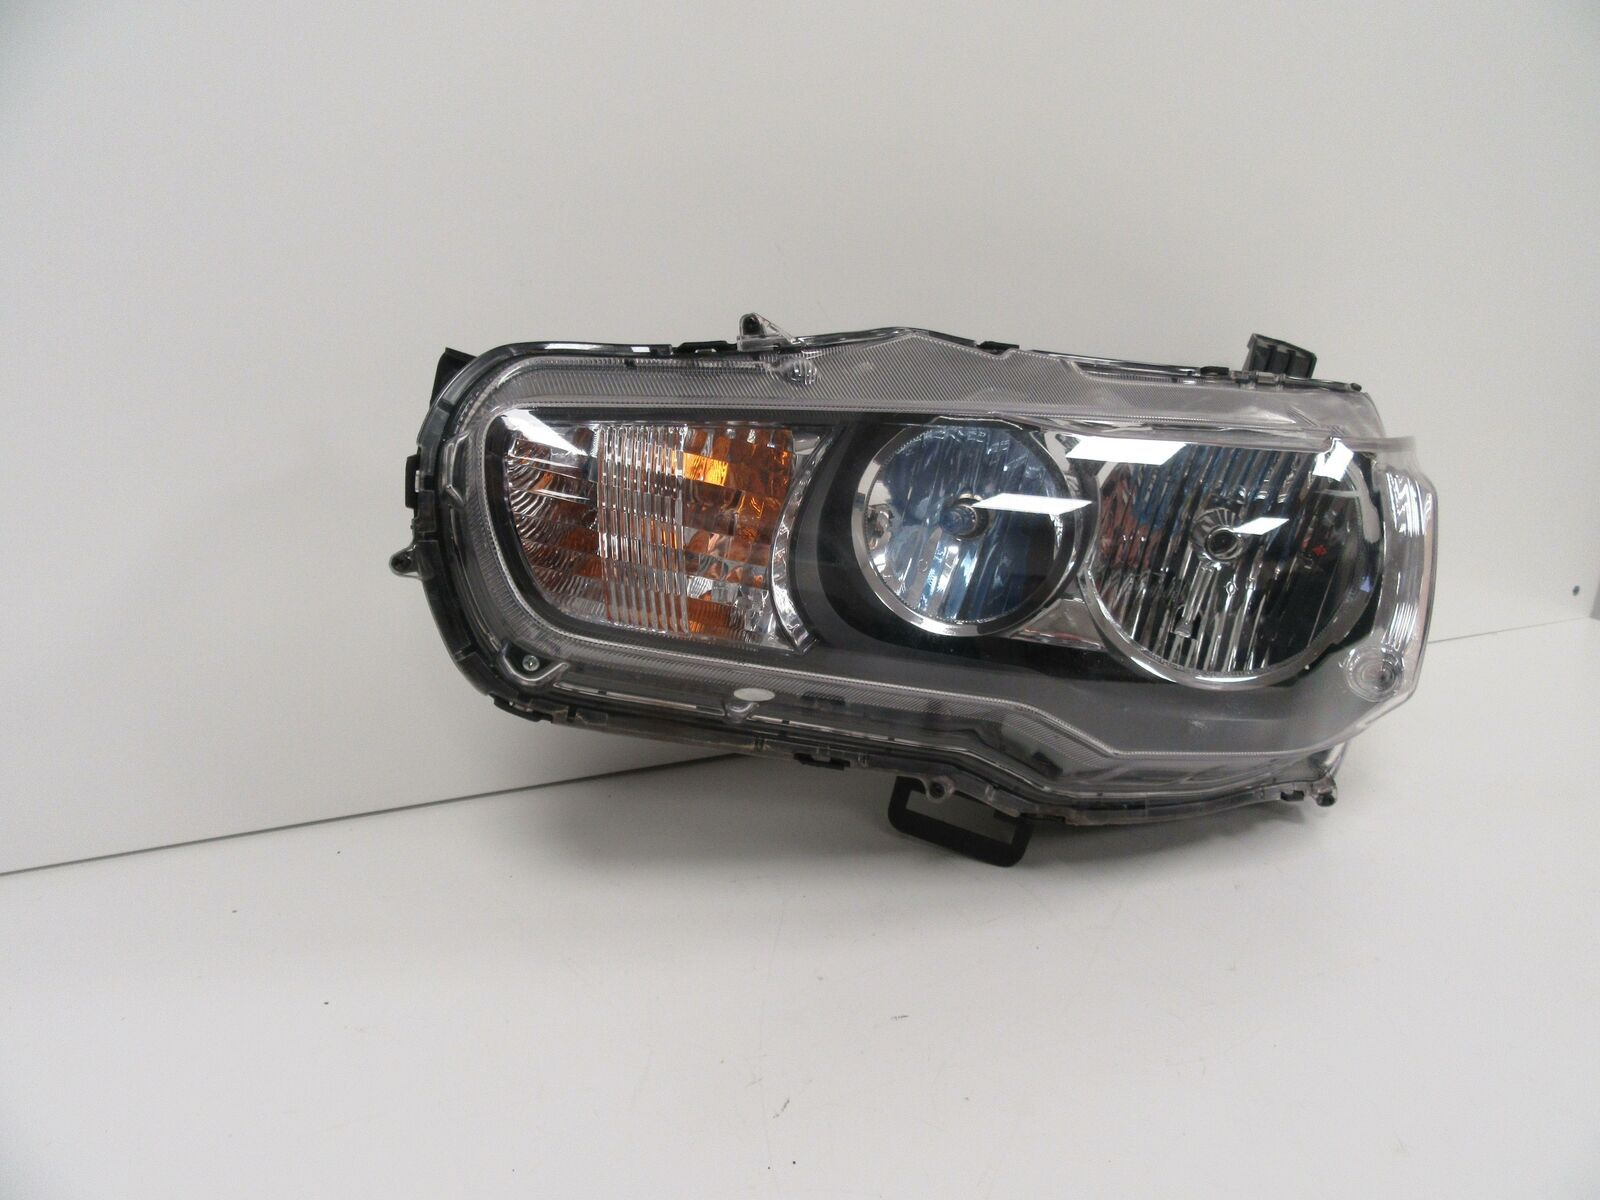 Primary image for 2010 2011 2012 2013 2014 2015 MITSUBISHI LANCER LH DRIVER HEADLIGHT OEM D53L